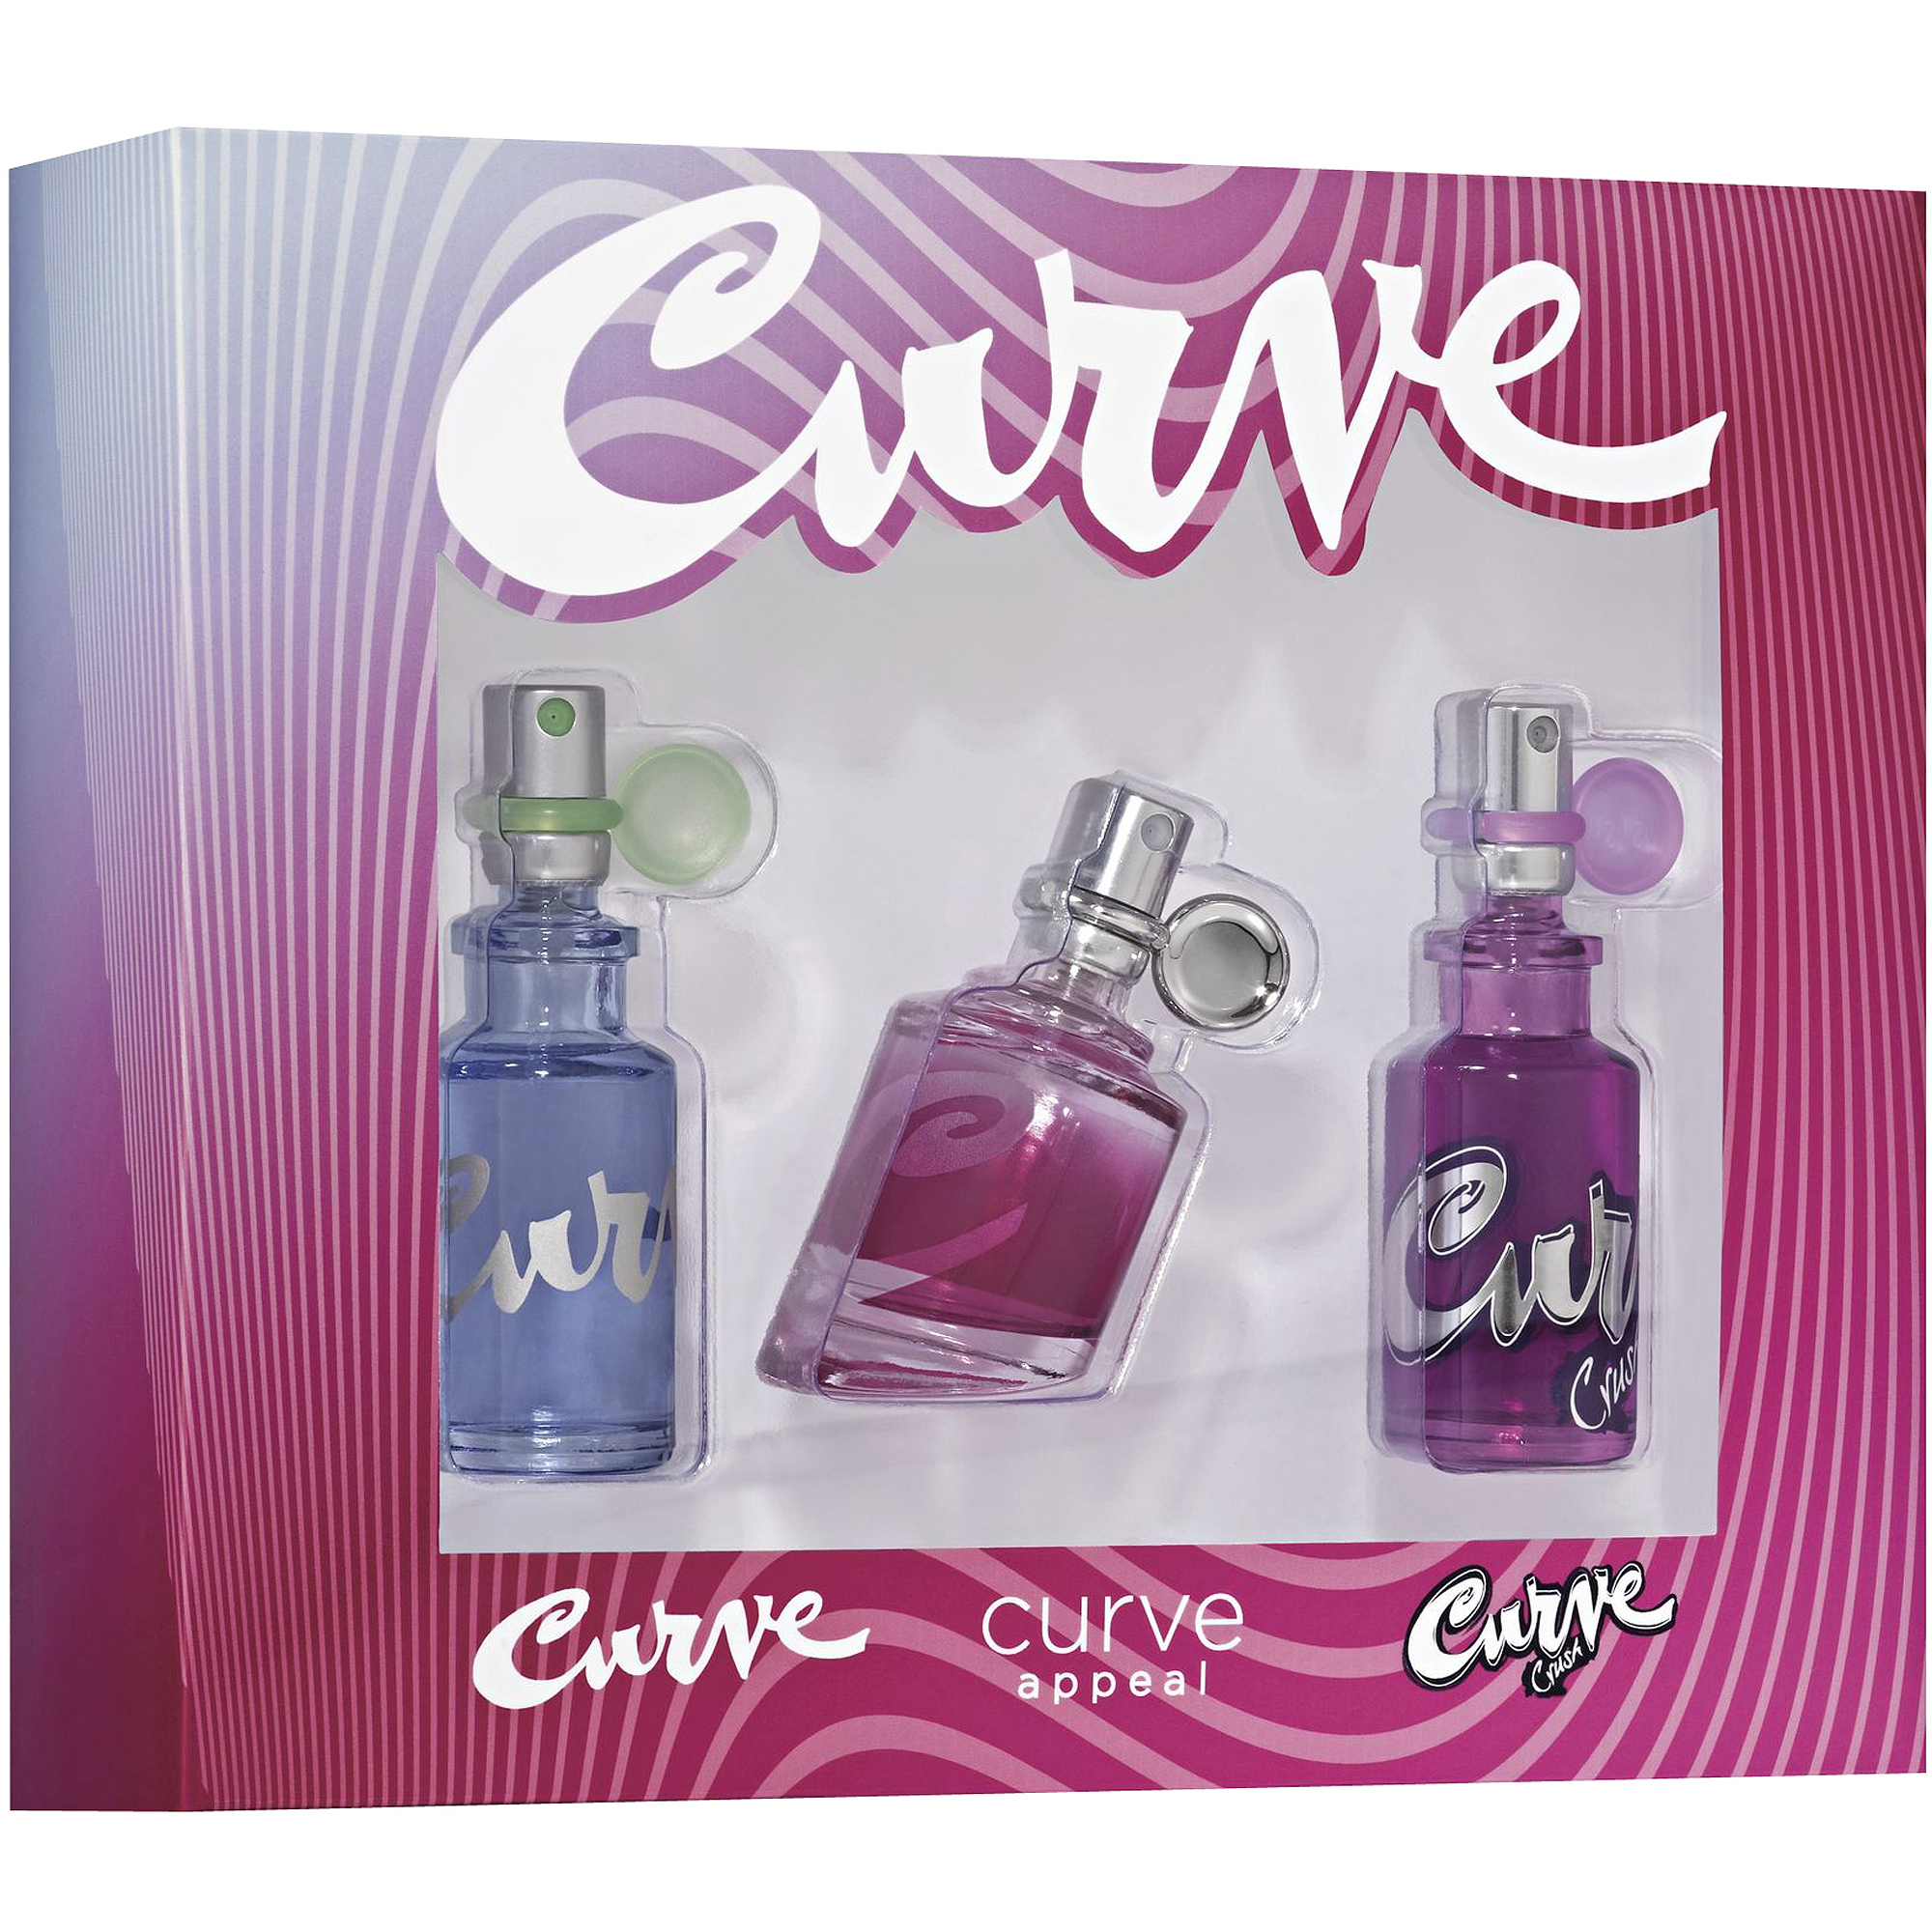 Curve/Curve Crush/Curve Appeal Fragrance Gift Set, 3 pc